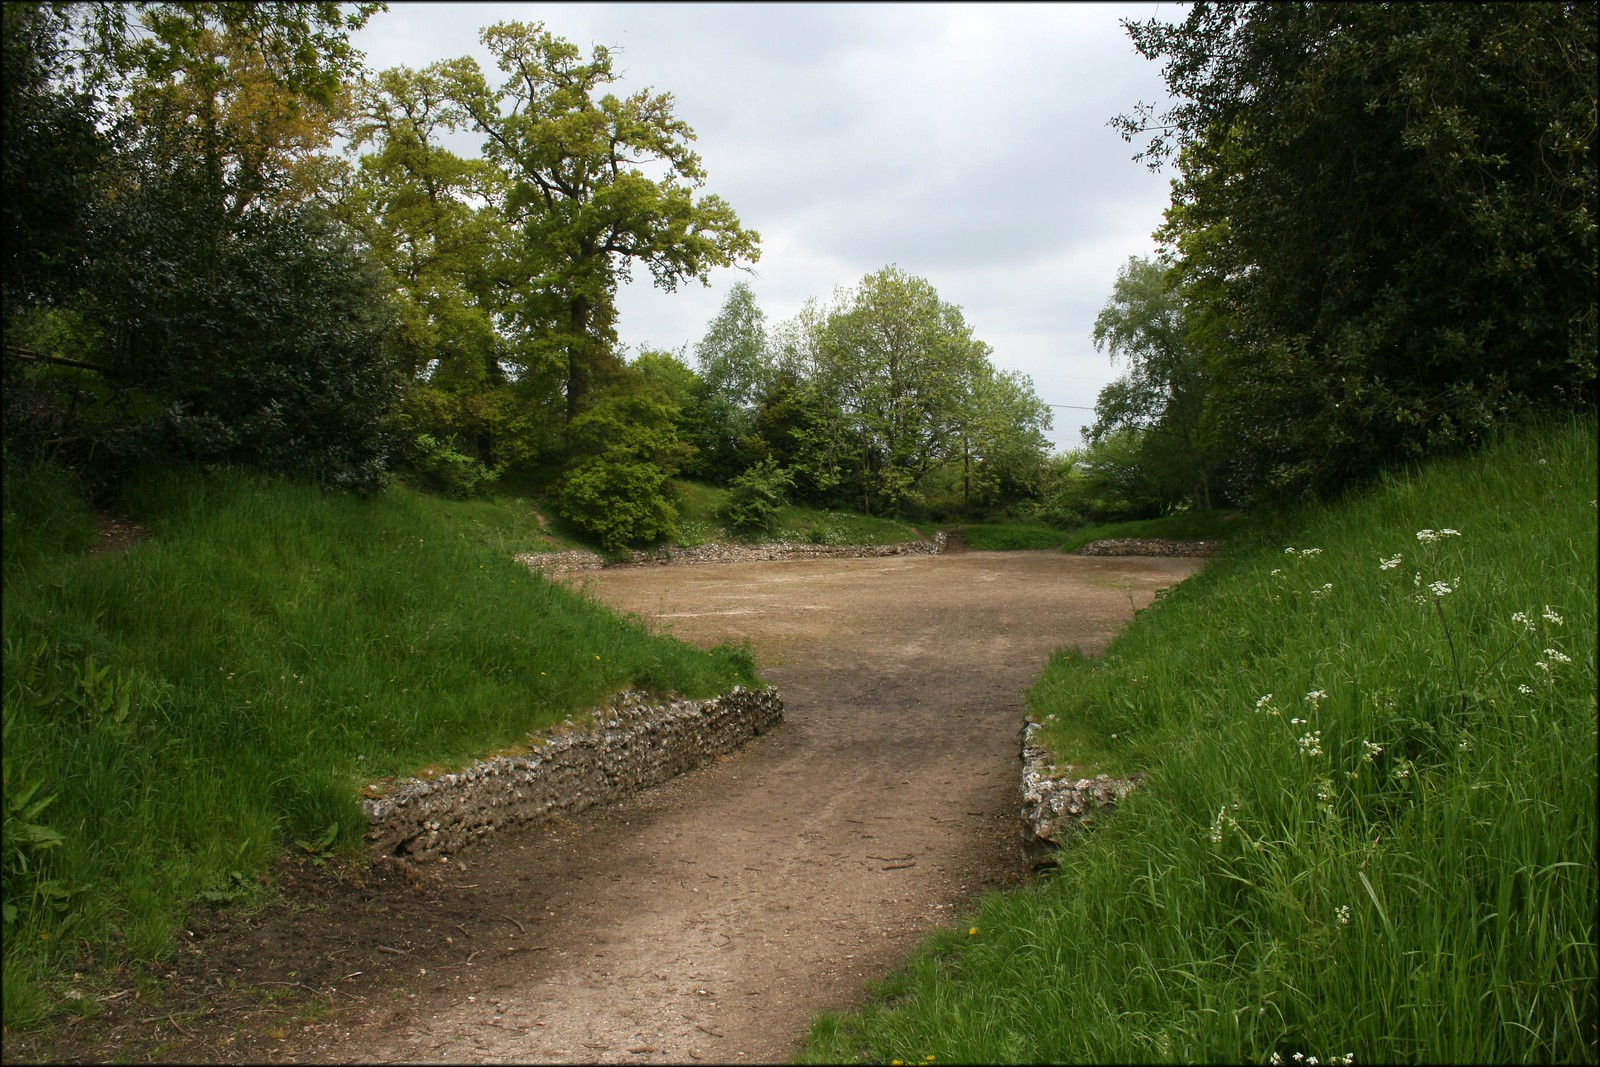 Calleva Atrebatvm Roman Amphitheatre Just to the east of Silchester is the remains of what was likely an important Roman Town. The town had a wall around it and an amphitheatre.